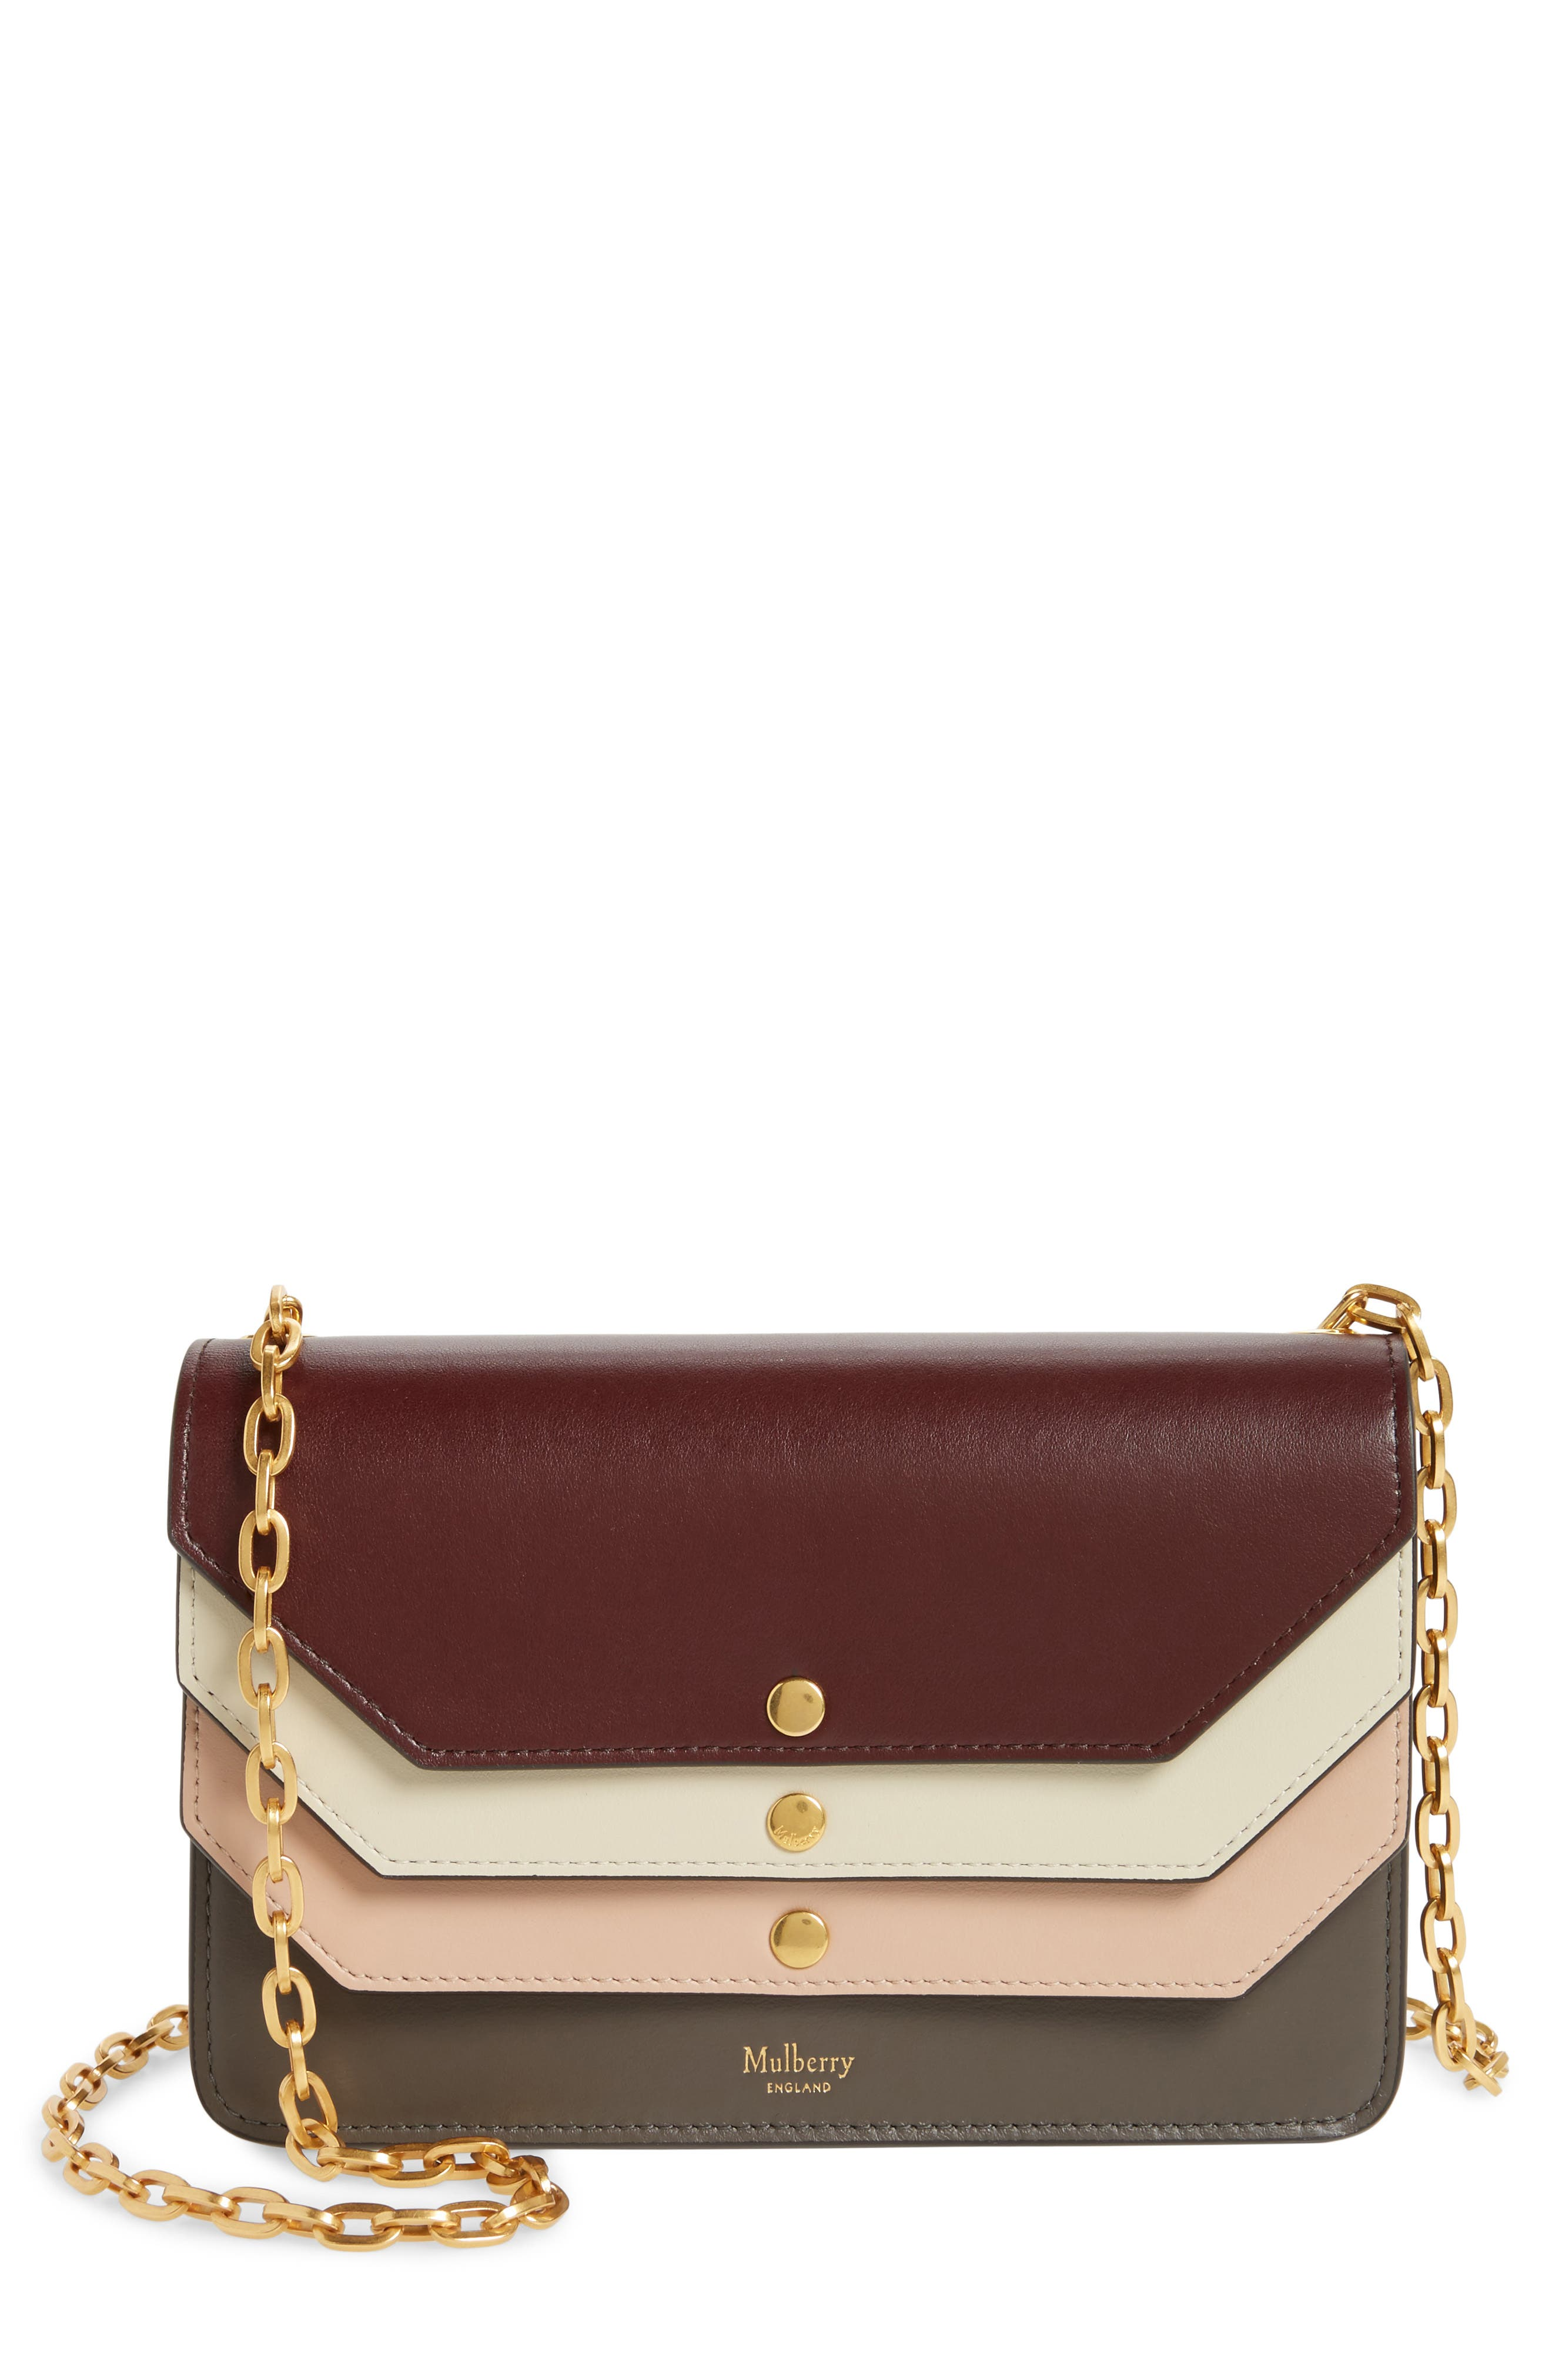 Multiflap Calfskin Leather Clutch,                             Main thumbnail 2, color,